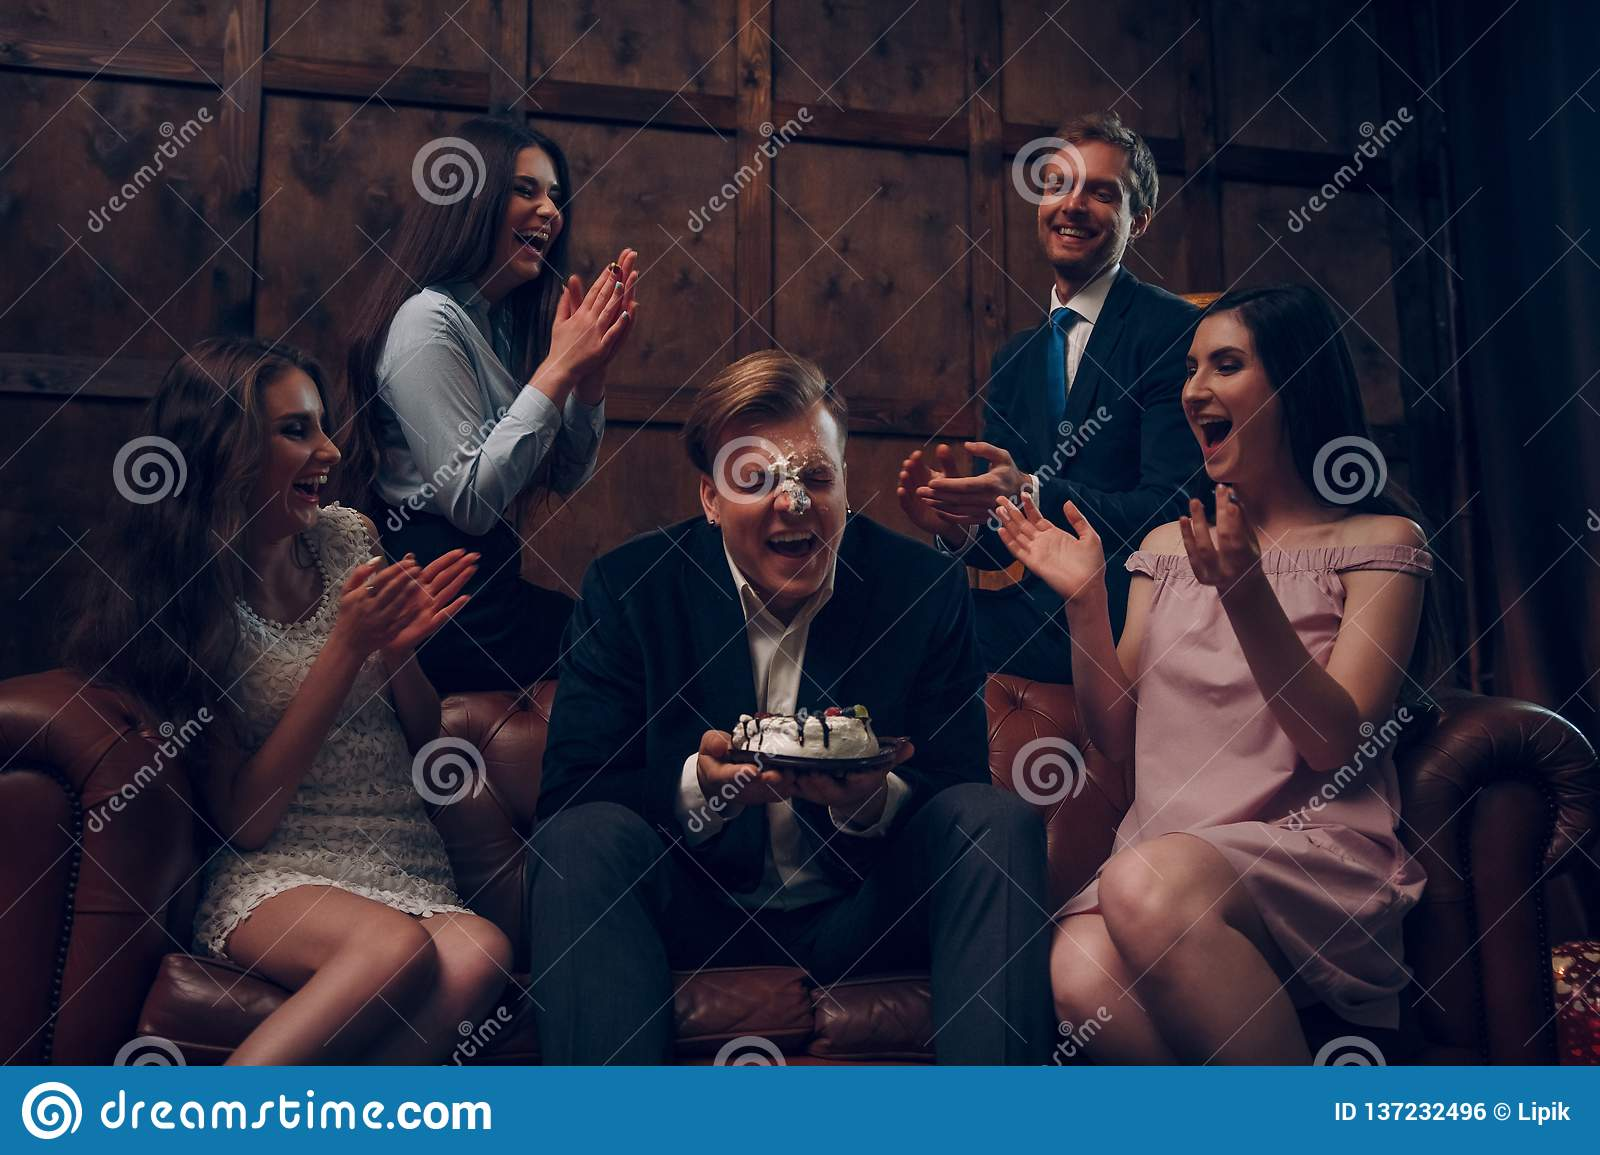 Handsome man`s face covered in birthday cake